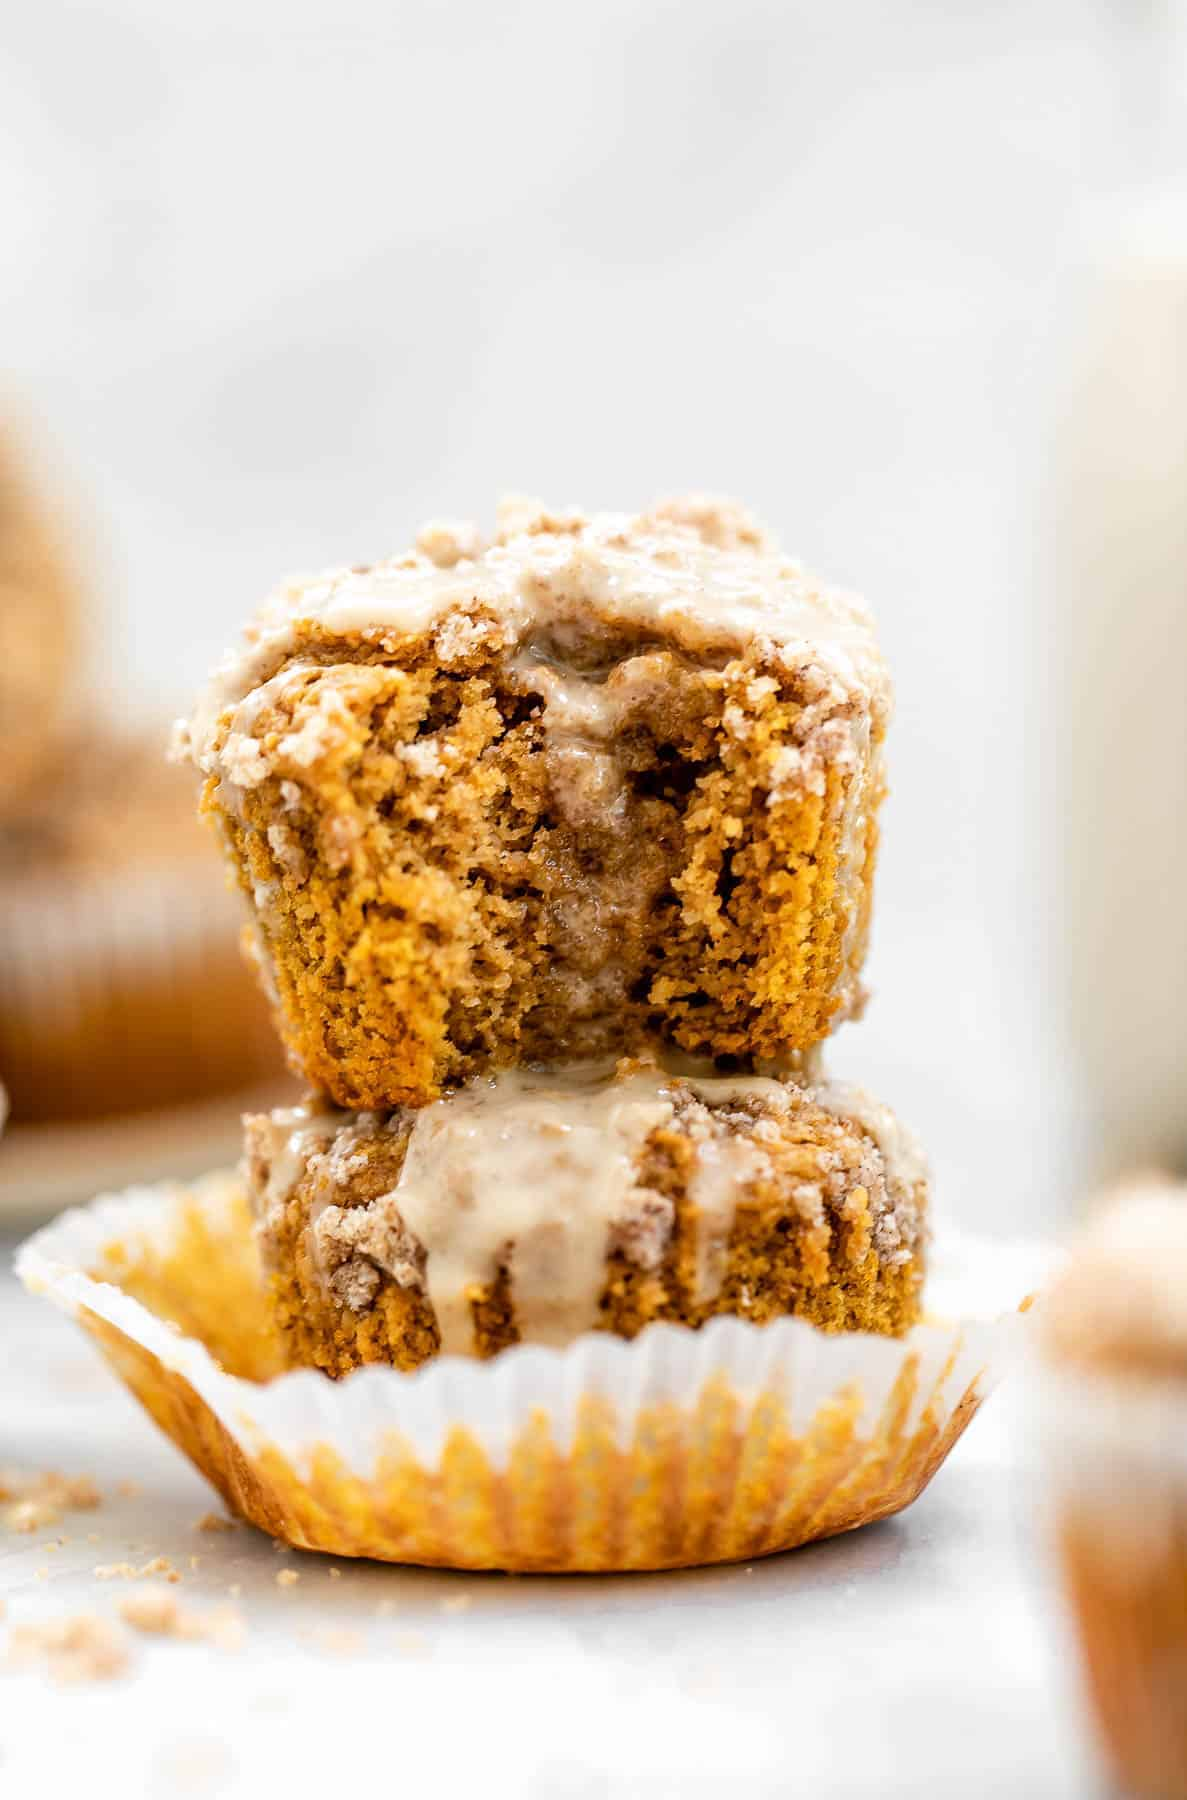 Sweet potato muffins with cinnamon streusel topping.